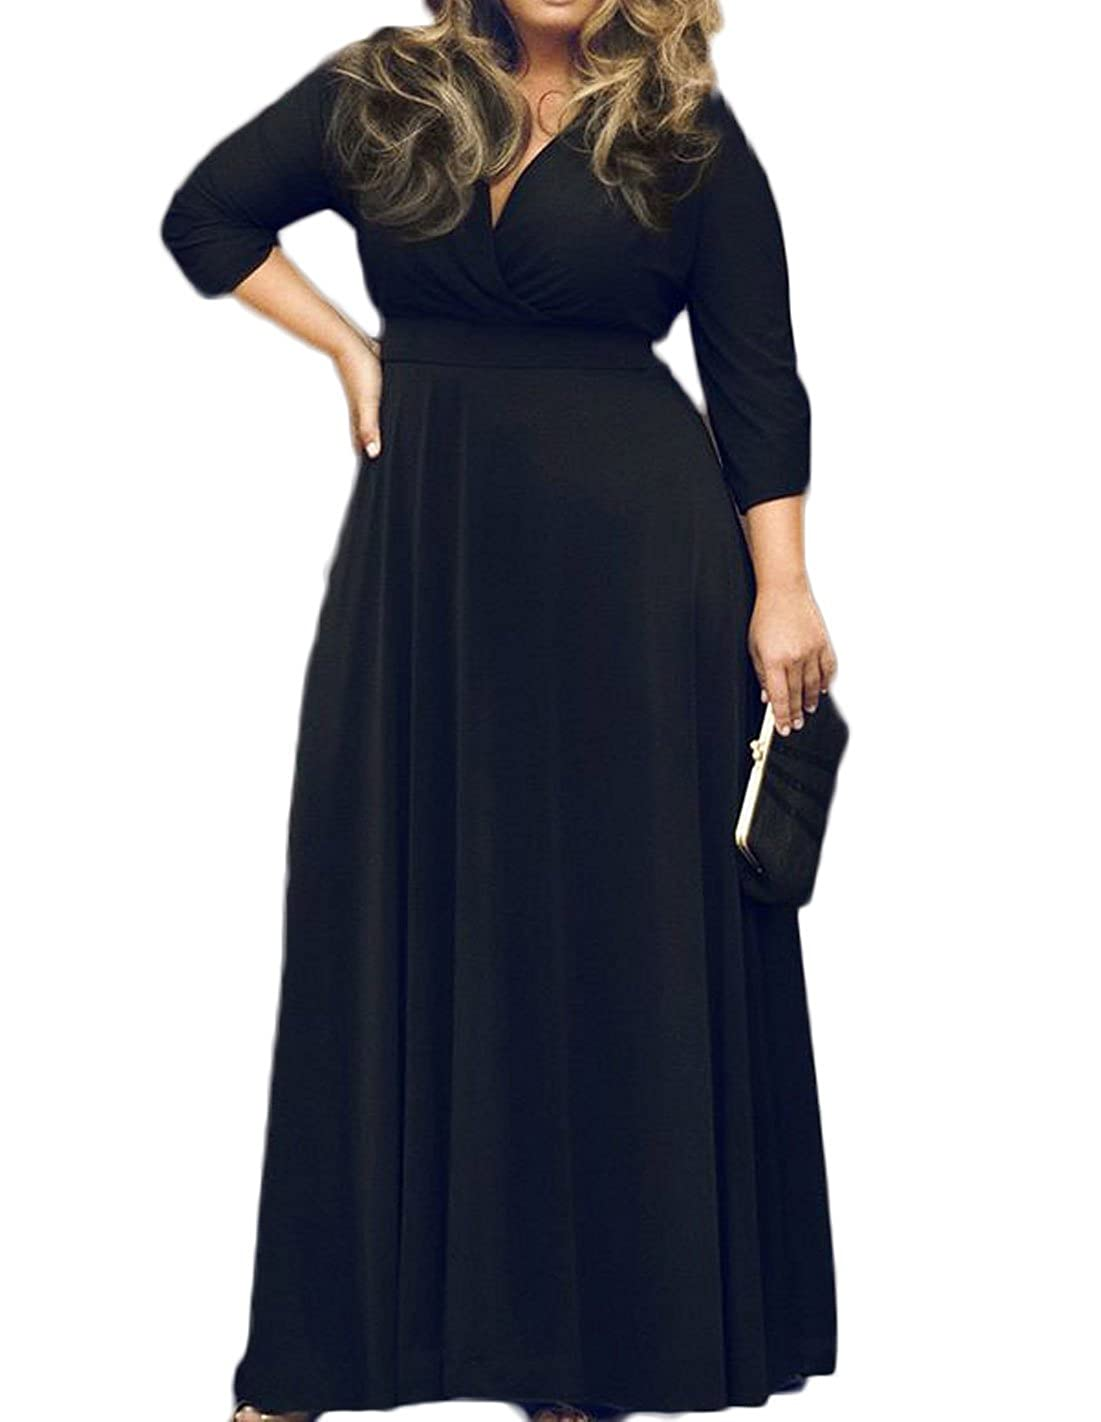 c787175f5383f POSESHE Women s Solid V-Neck 3 4 Sleeve Plus Size Evening Party Maxi Dress  at Amazon Women s Clothing store